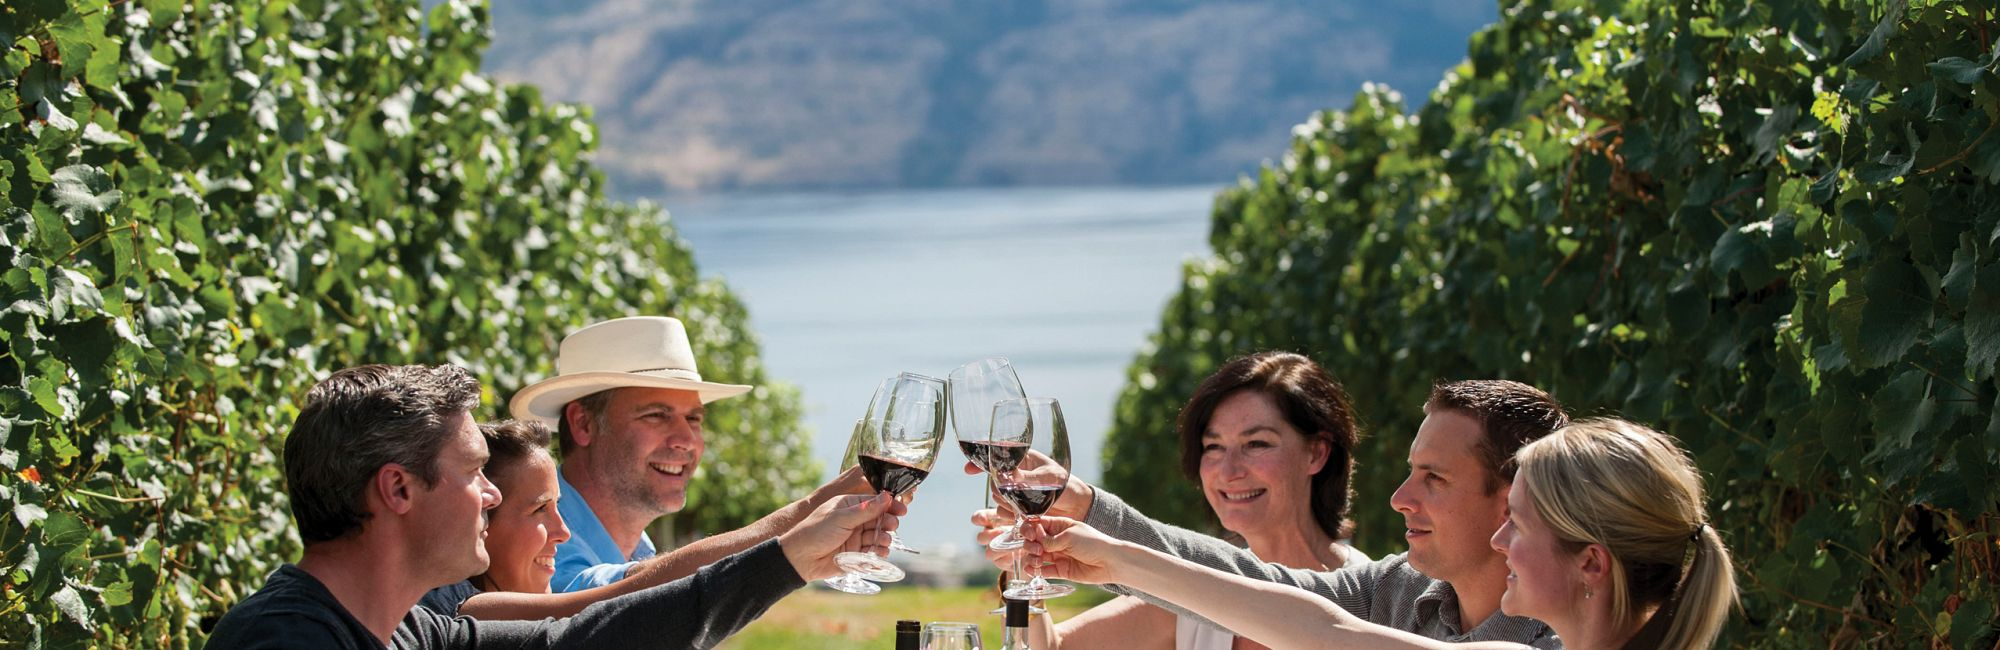 About <span>Okanagan Wine Country Tours</span>